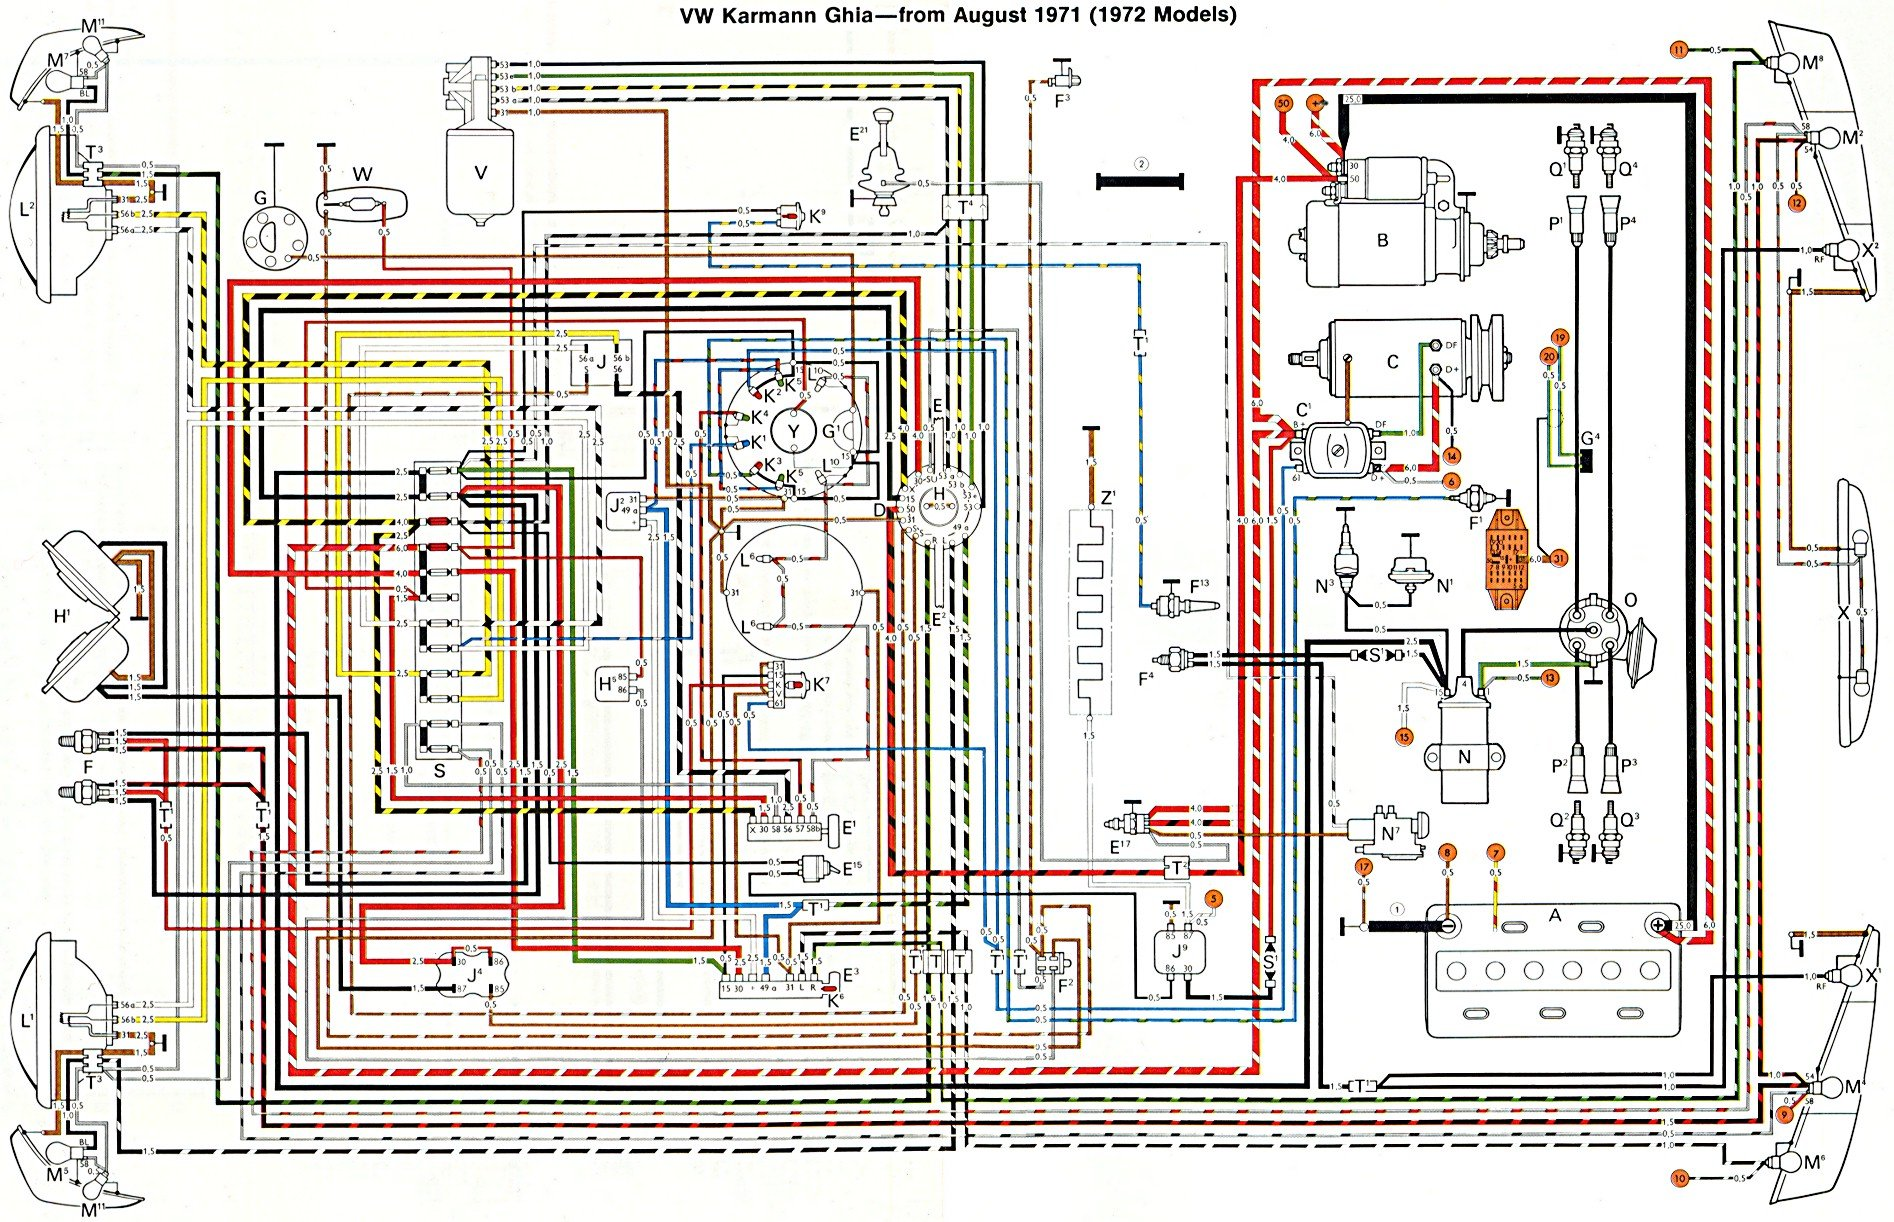 72ghia das volks vintage volkswagen gruppe \u2022 view topic turning signal vw turn signal wiring diagram at creativeand.co